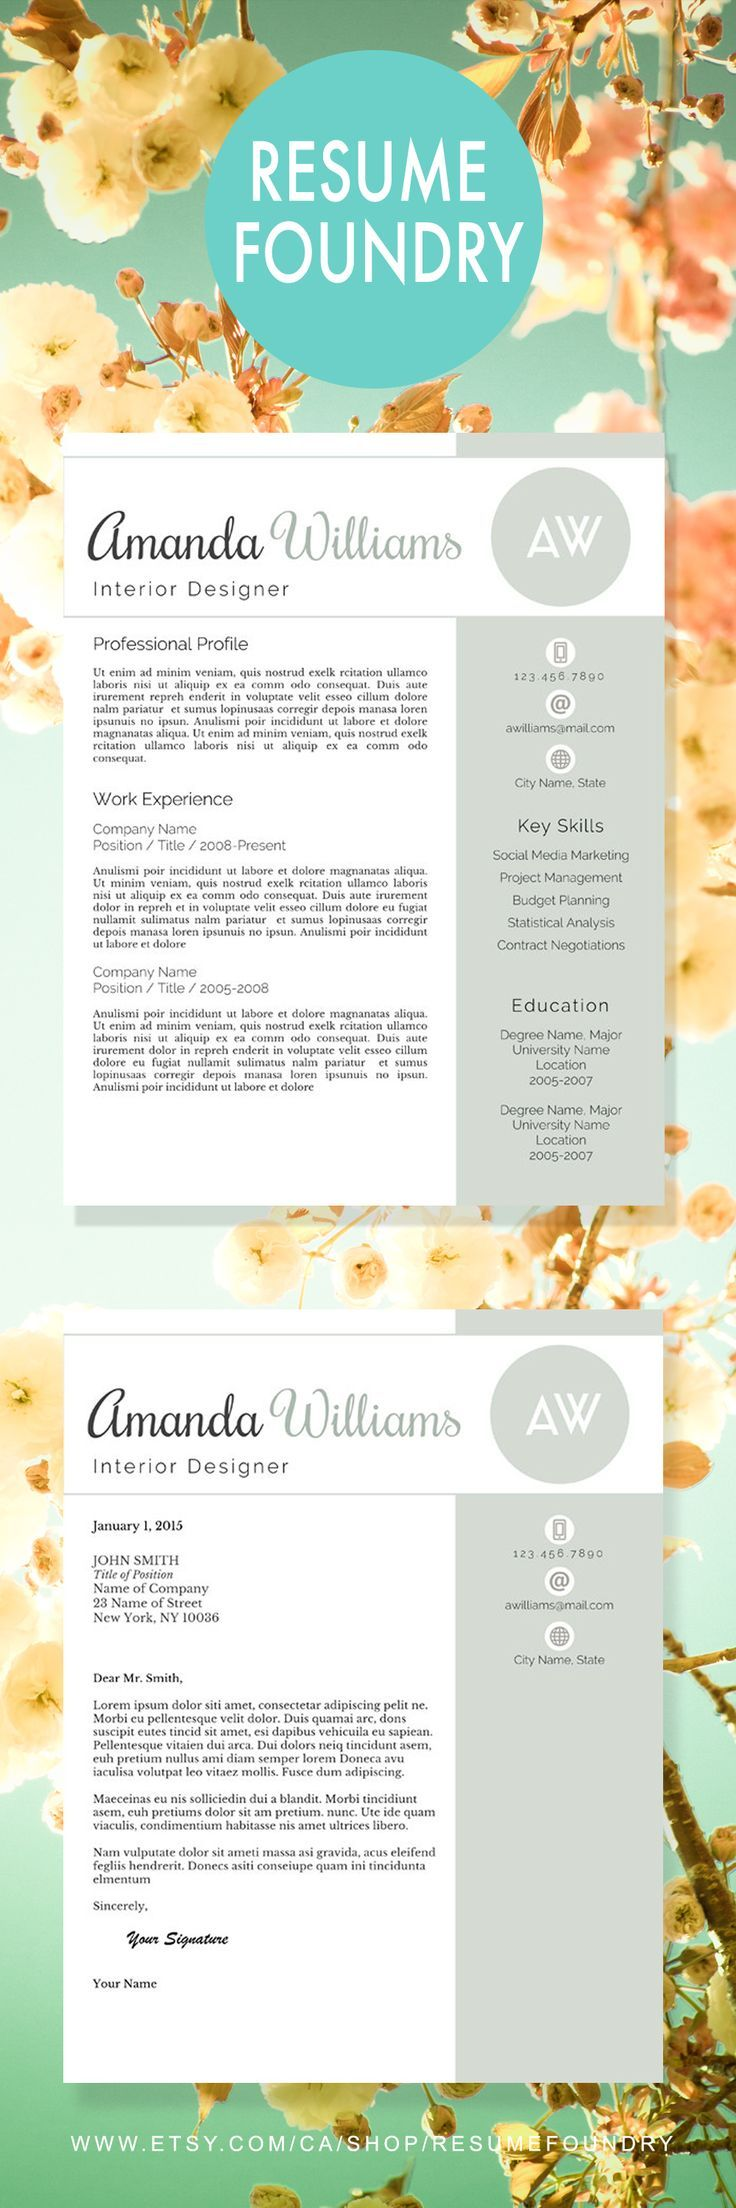 Best Currculos Images On   Resume Templates Cv